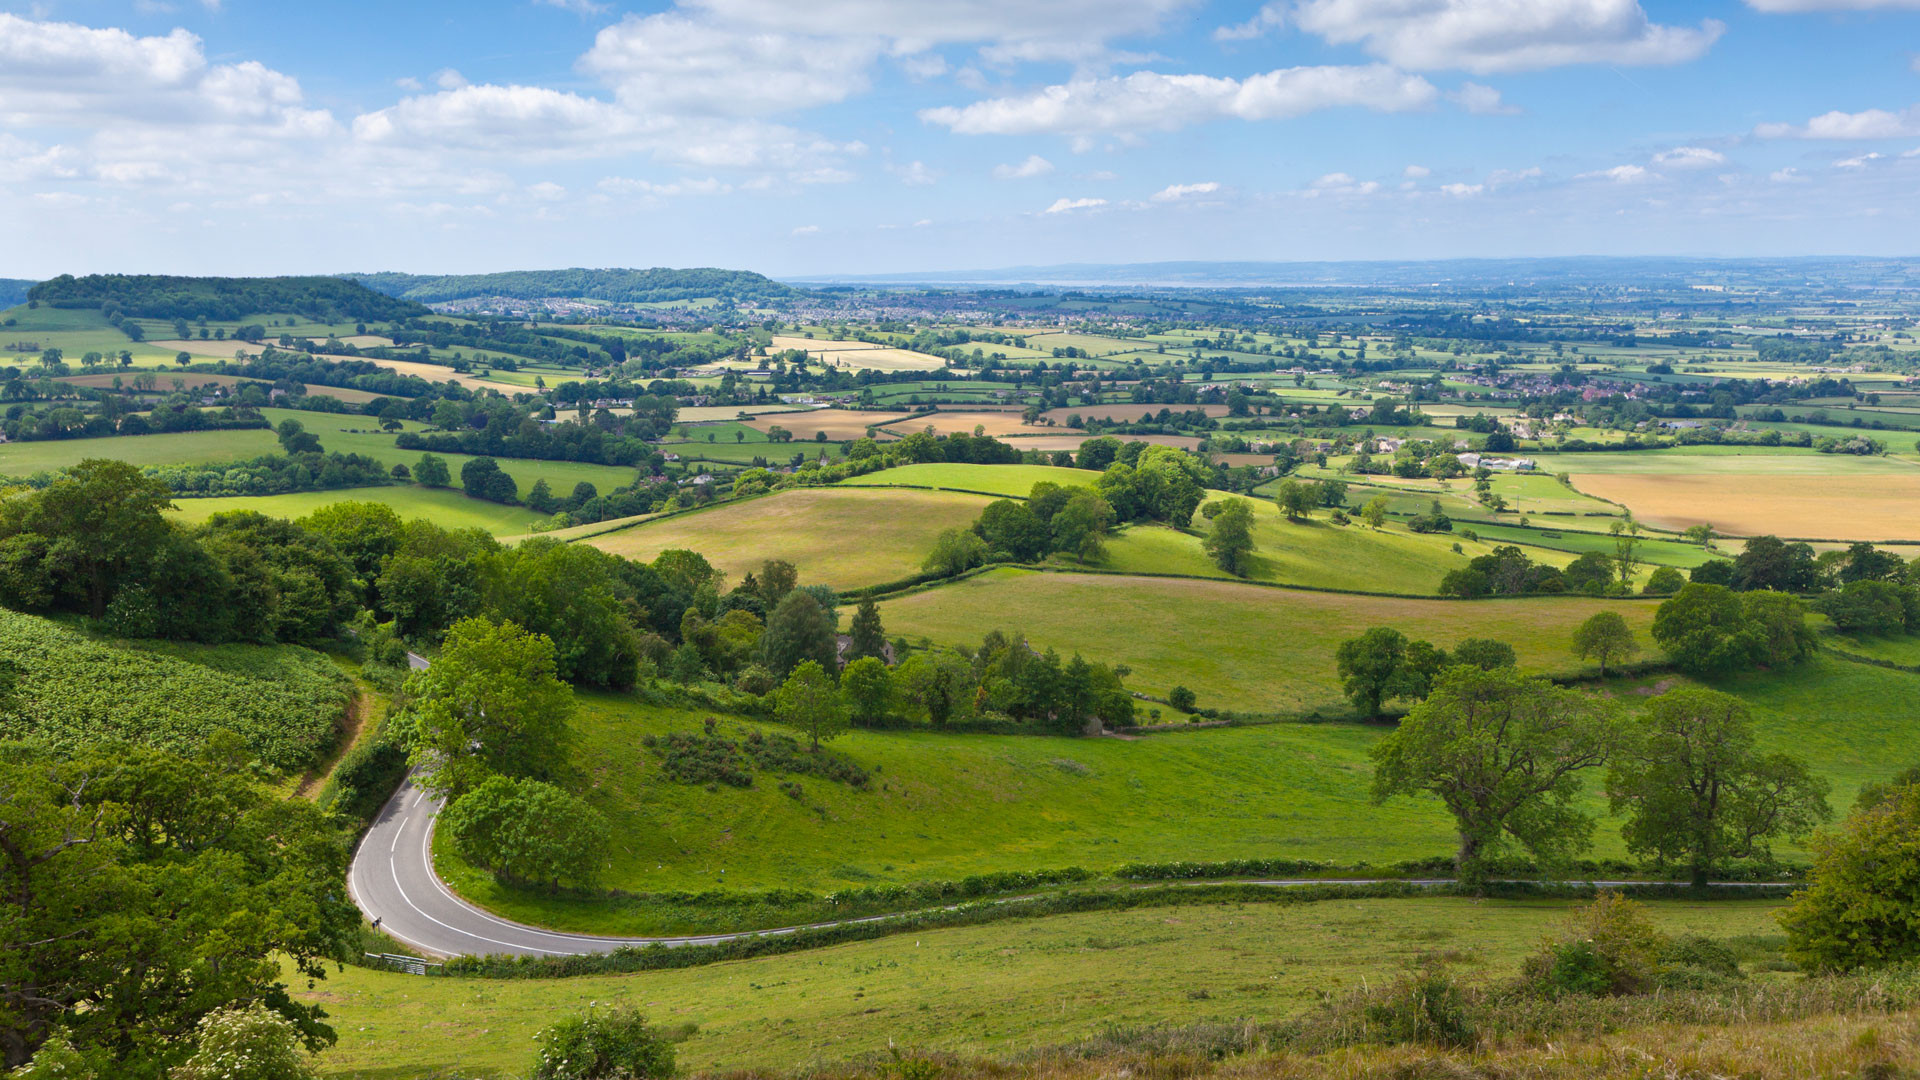 english countryside wallpaper  u00b7 u2460 wallpapertag